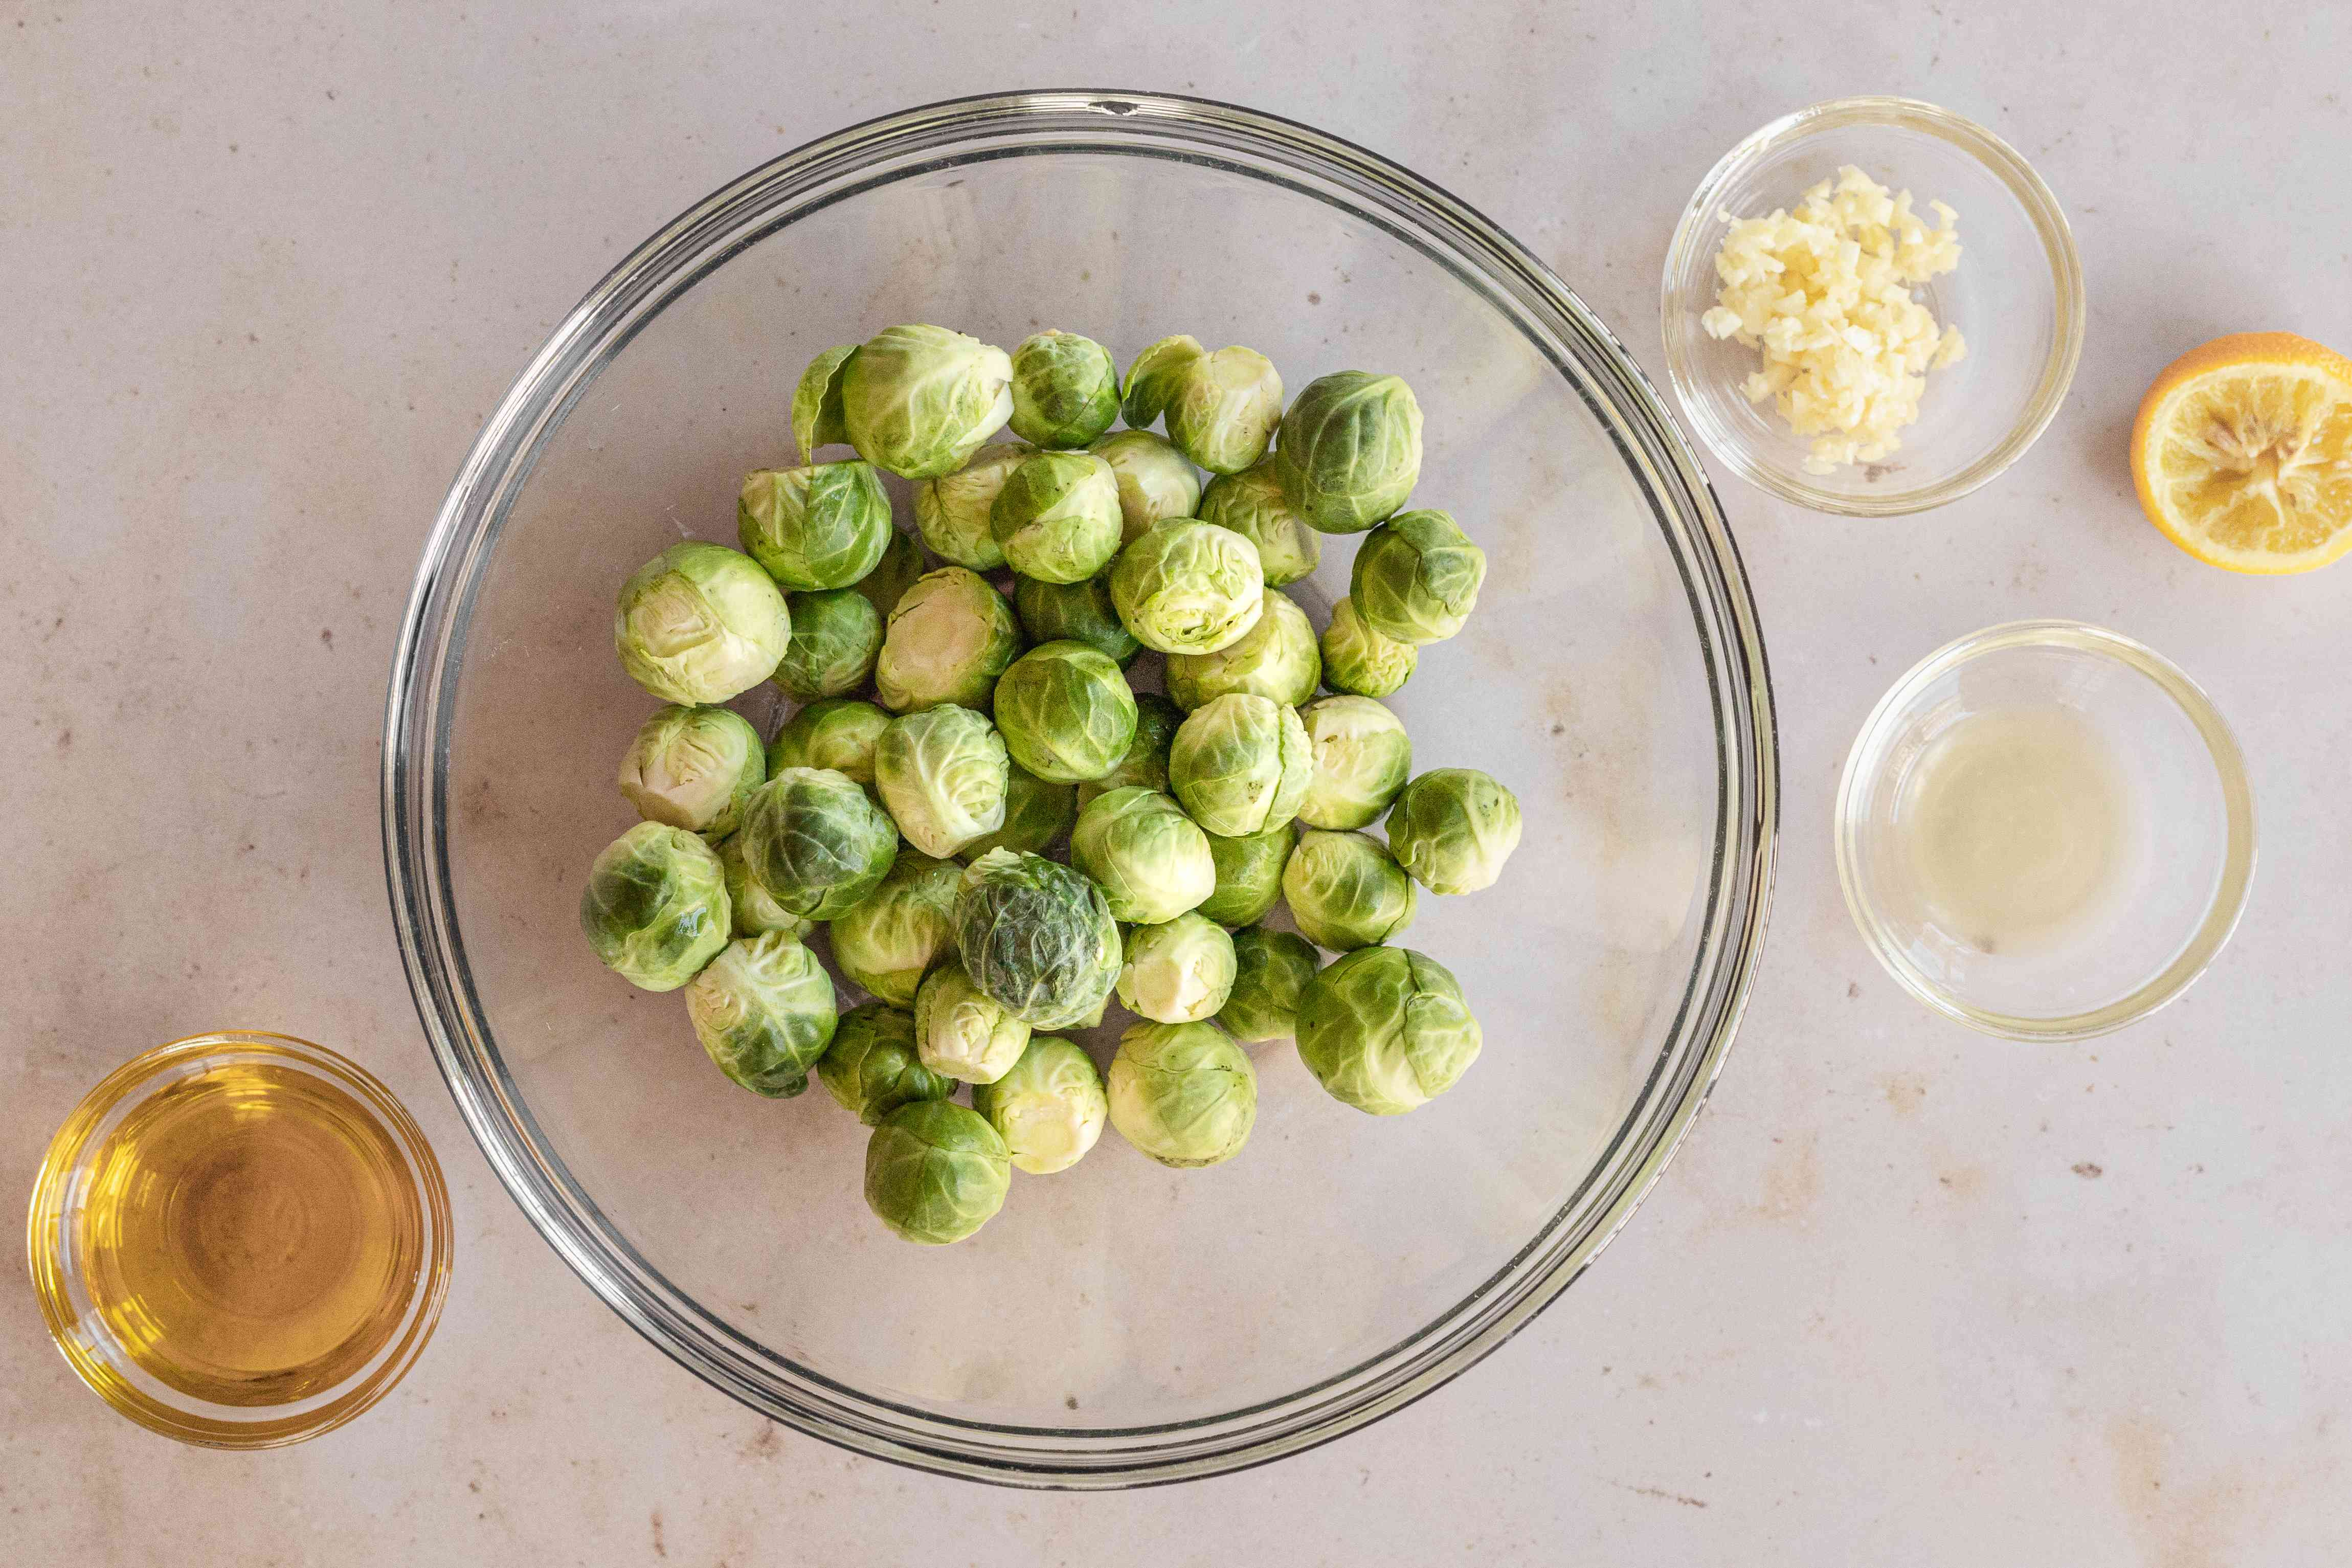 Making the best brussel sprouts recipe in a glass dish.